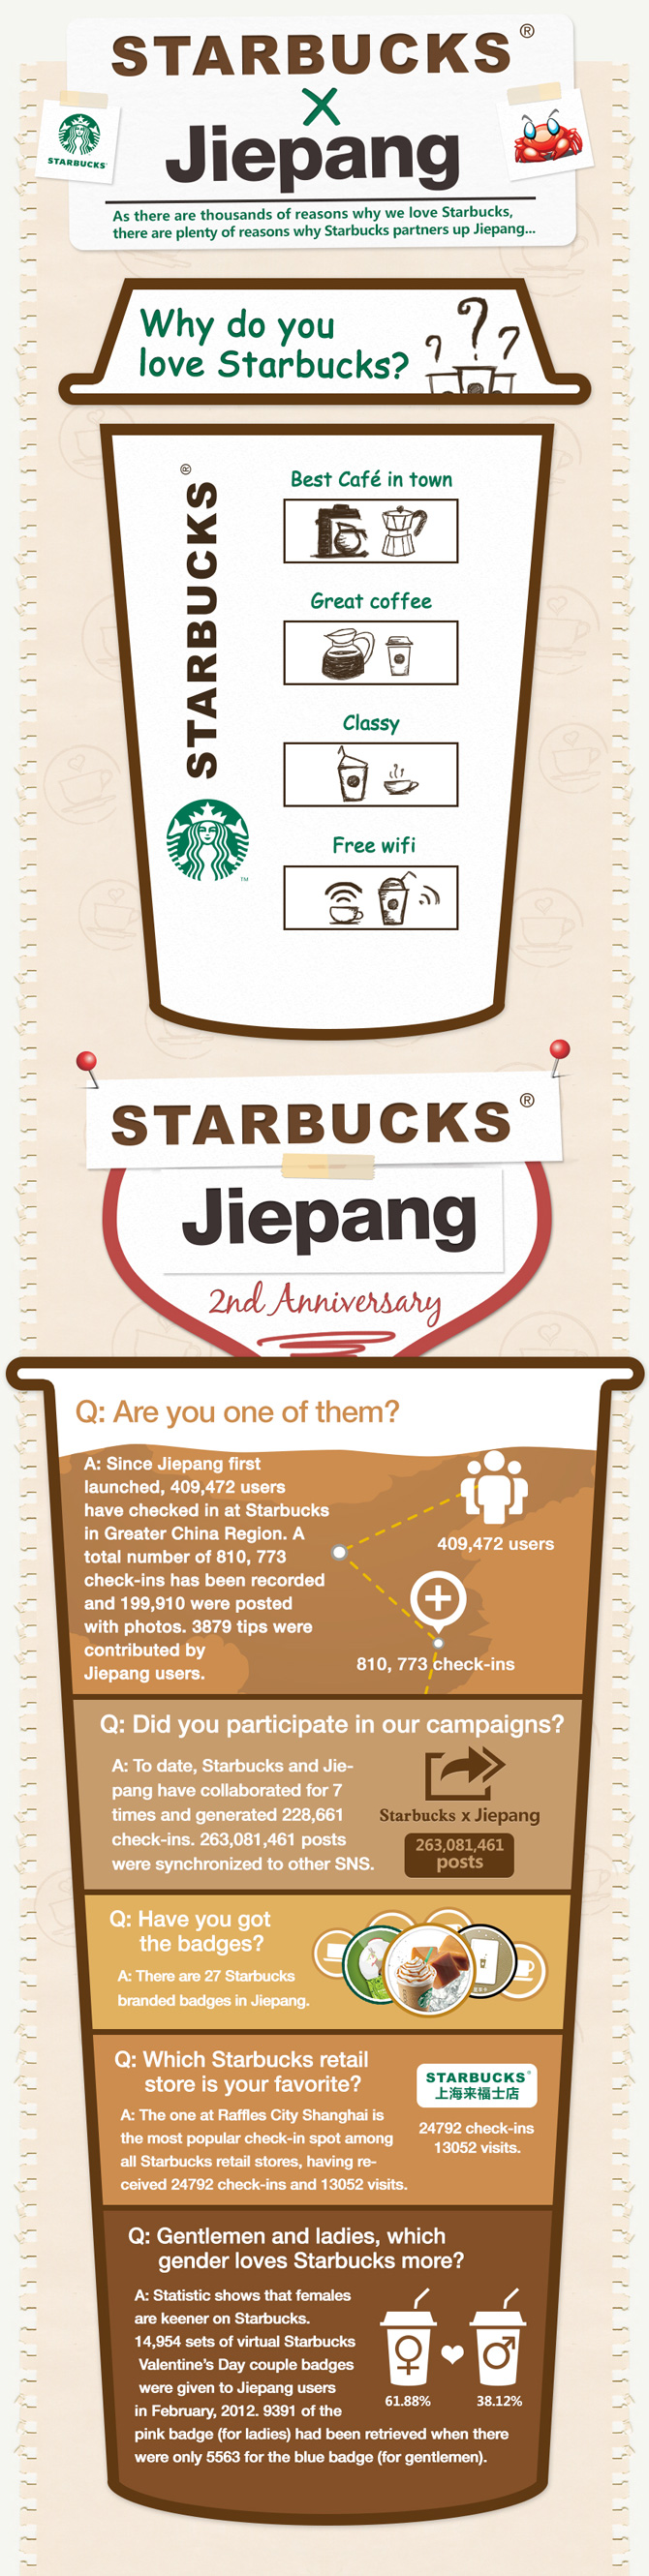 Most China Check-ins: Starbucks Tops on Jiepang for Second Year ...